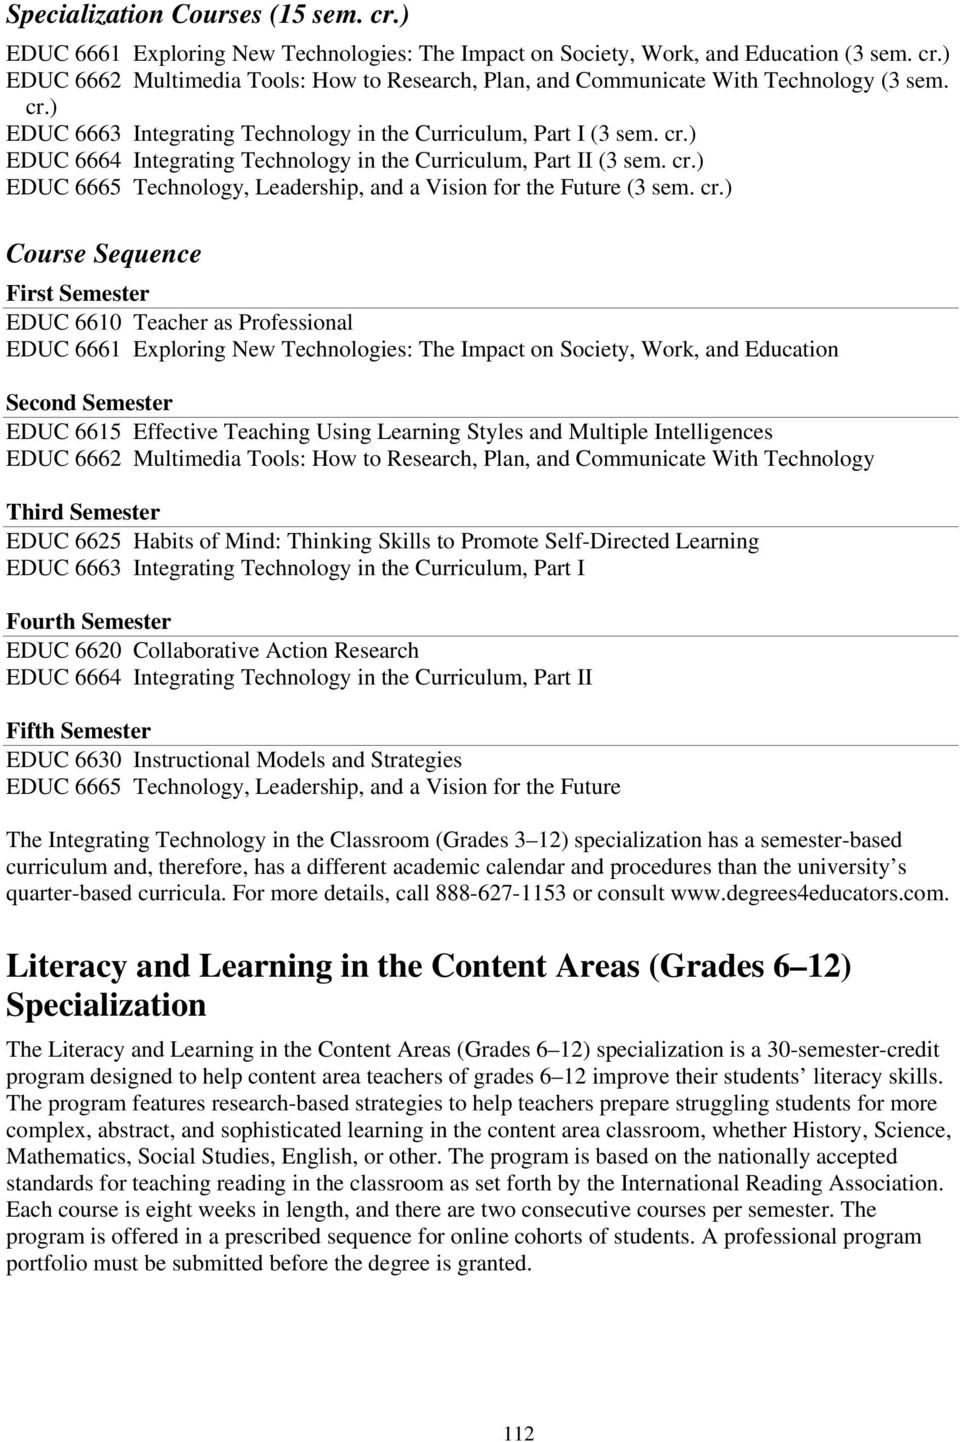 cr.) Course Sequence First Semester EDUC 6610 Teacher as Professional EDUC 6661 Exploring New Technologies: The Impact on Society, Work, and Education Second Semester EDUC 6615 Effective Teaching